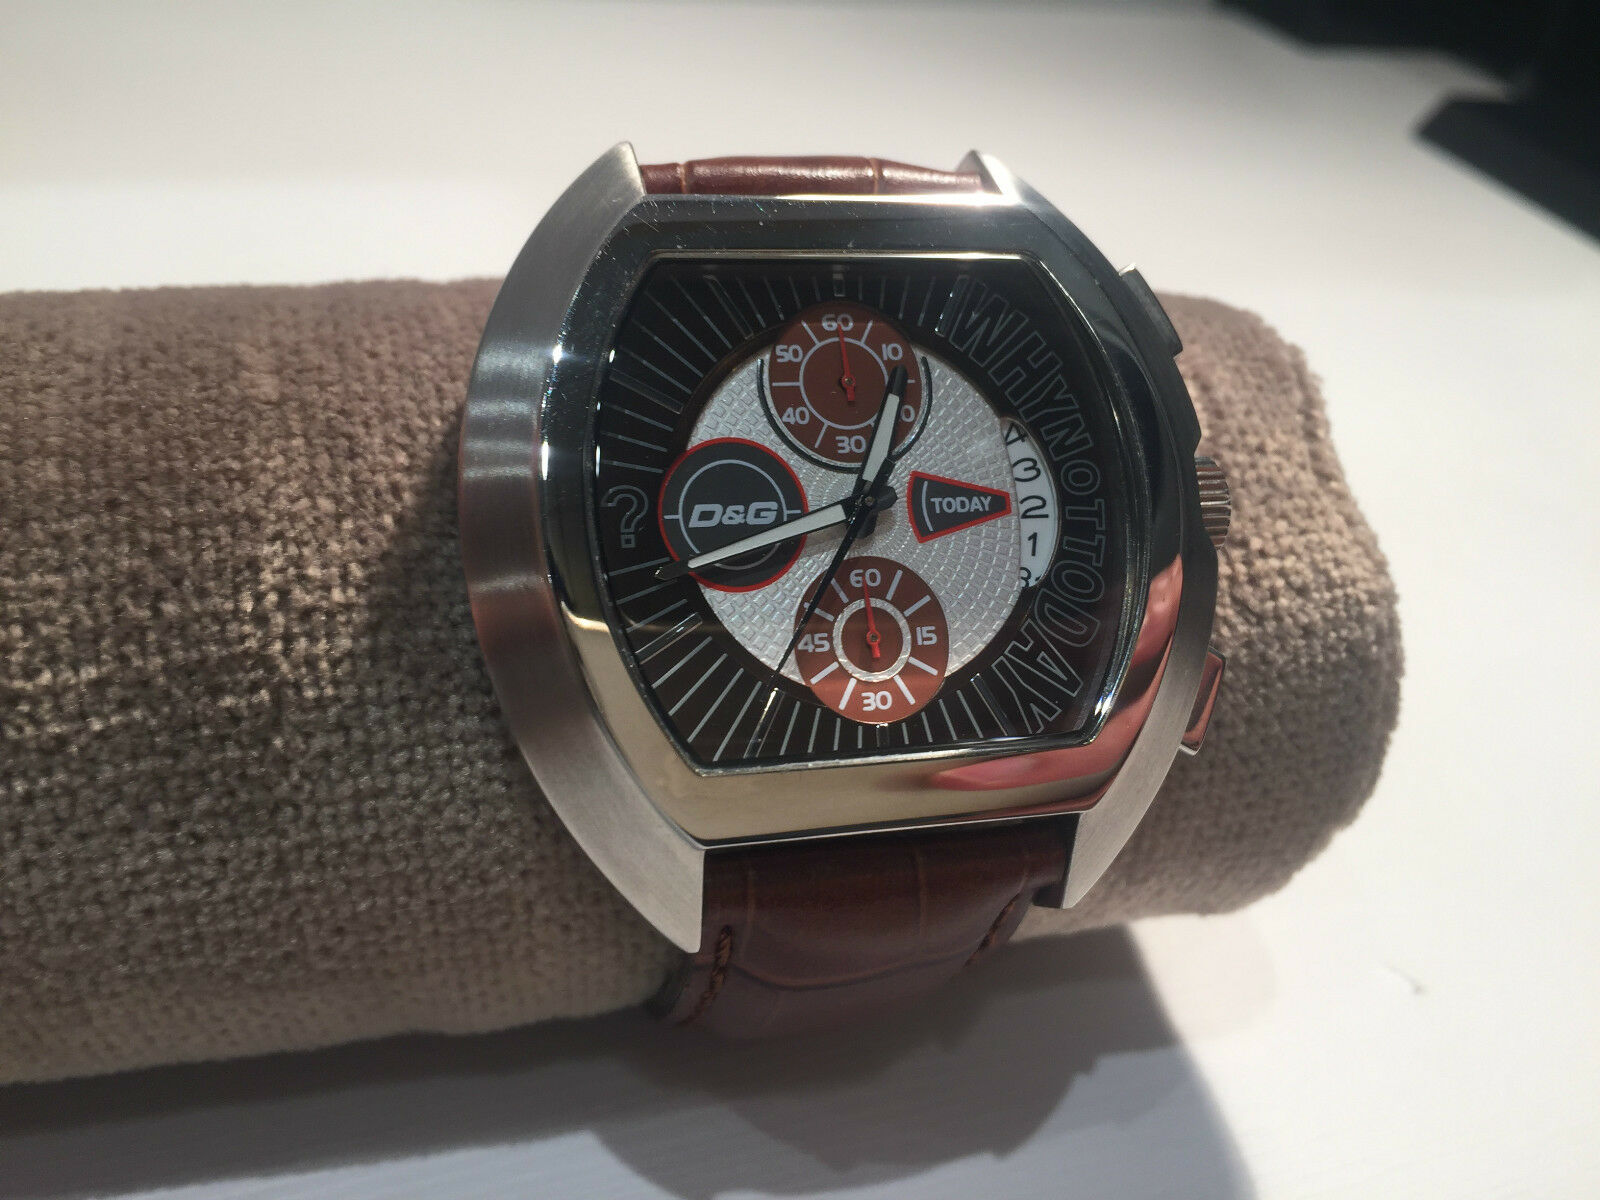 c1c466f9d65a Reloj Watch - D G - Dolce   Gabbana Time - Why Not Today - Brown Leather 1  sur 3Seulement 1 disponible ...